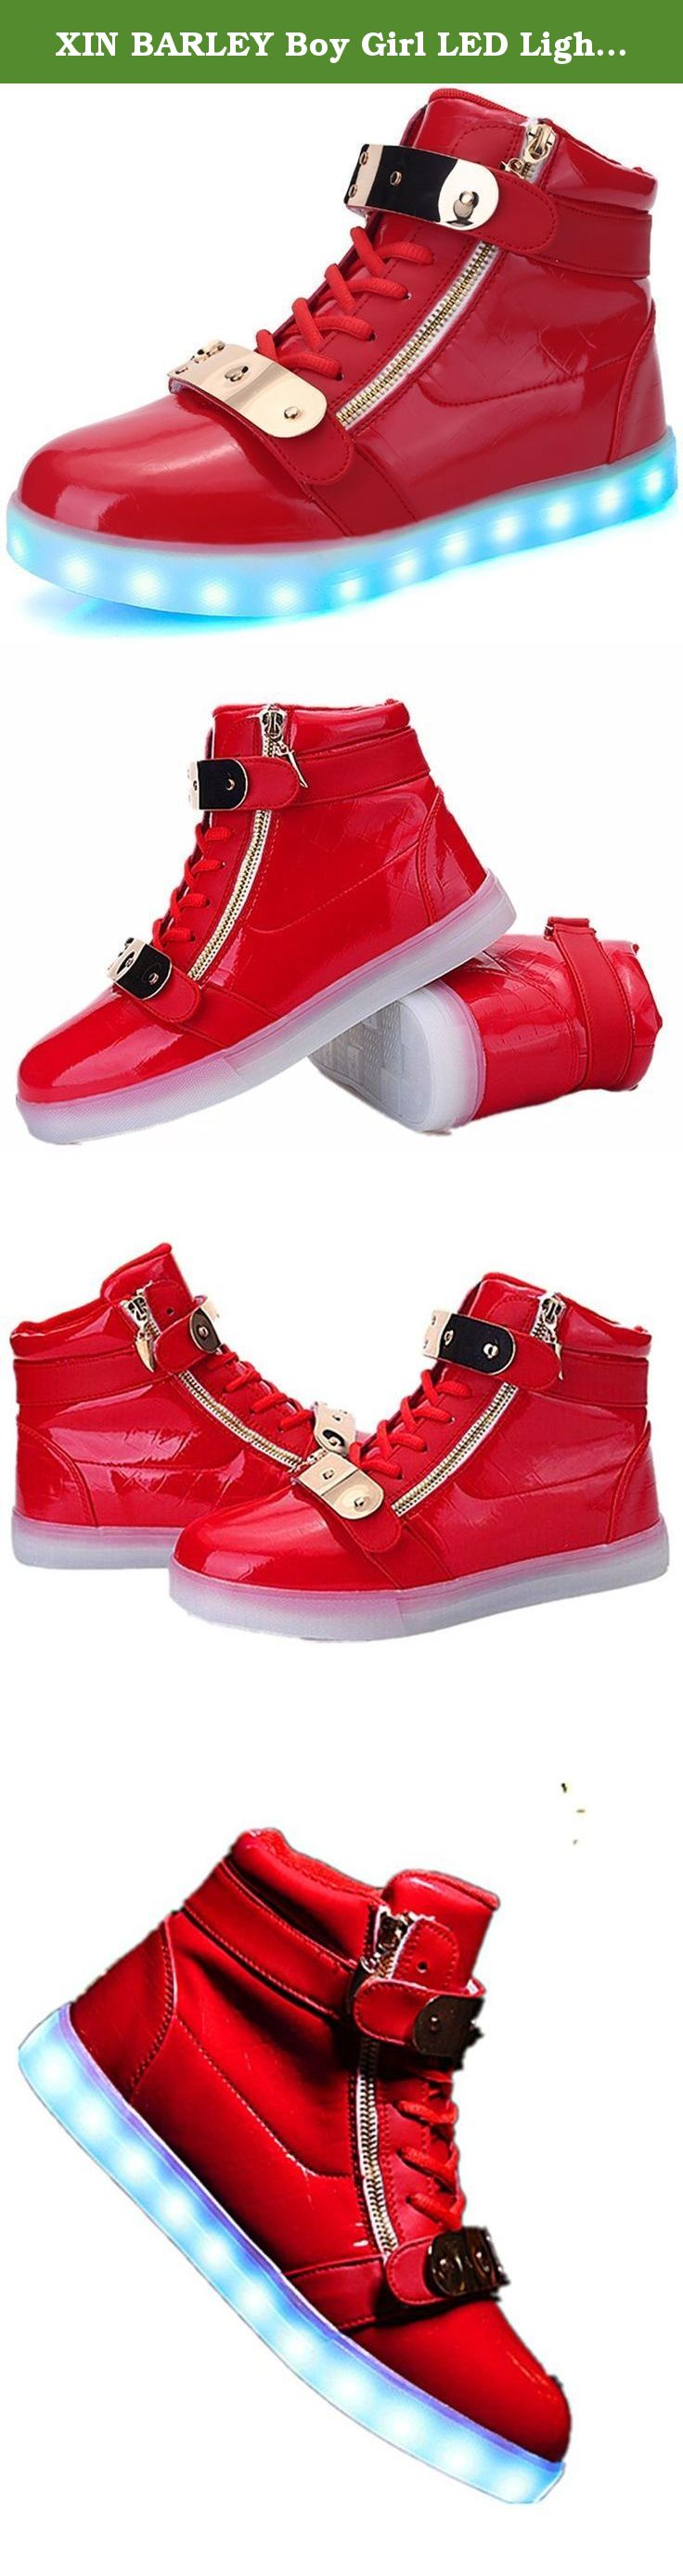 XIN BARLEY Boy Girl LED Light Up Shoes Street Style Gold Tone Zip